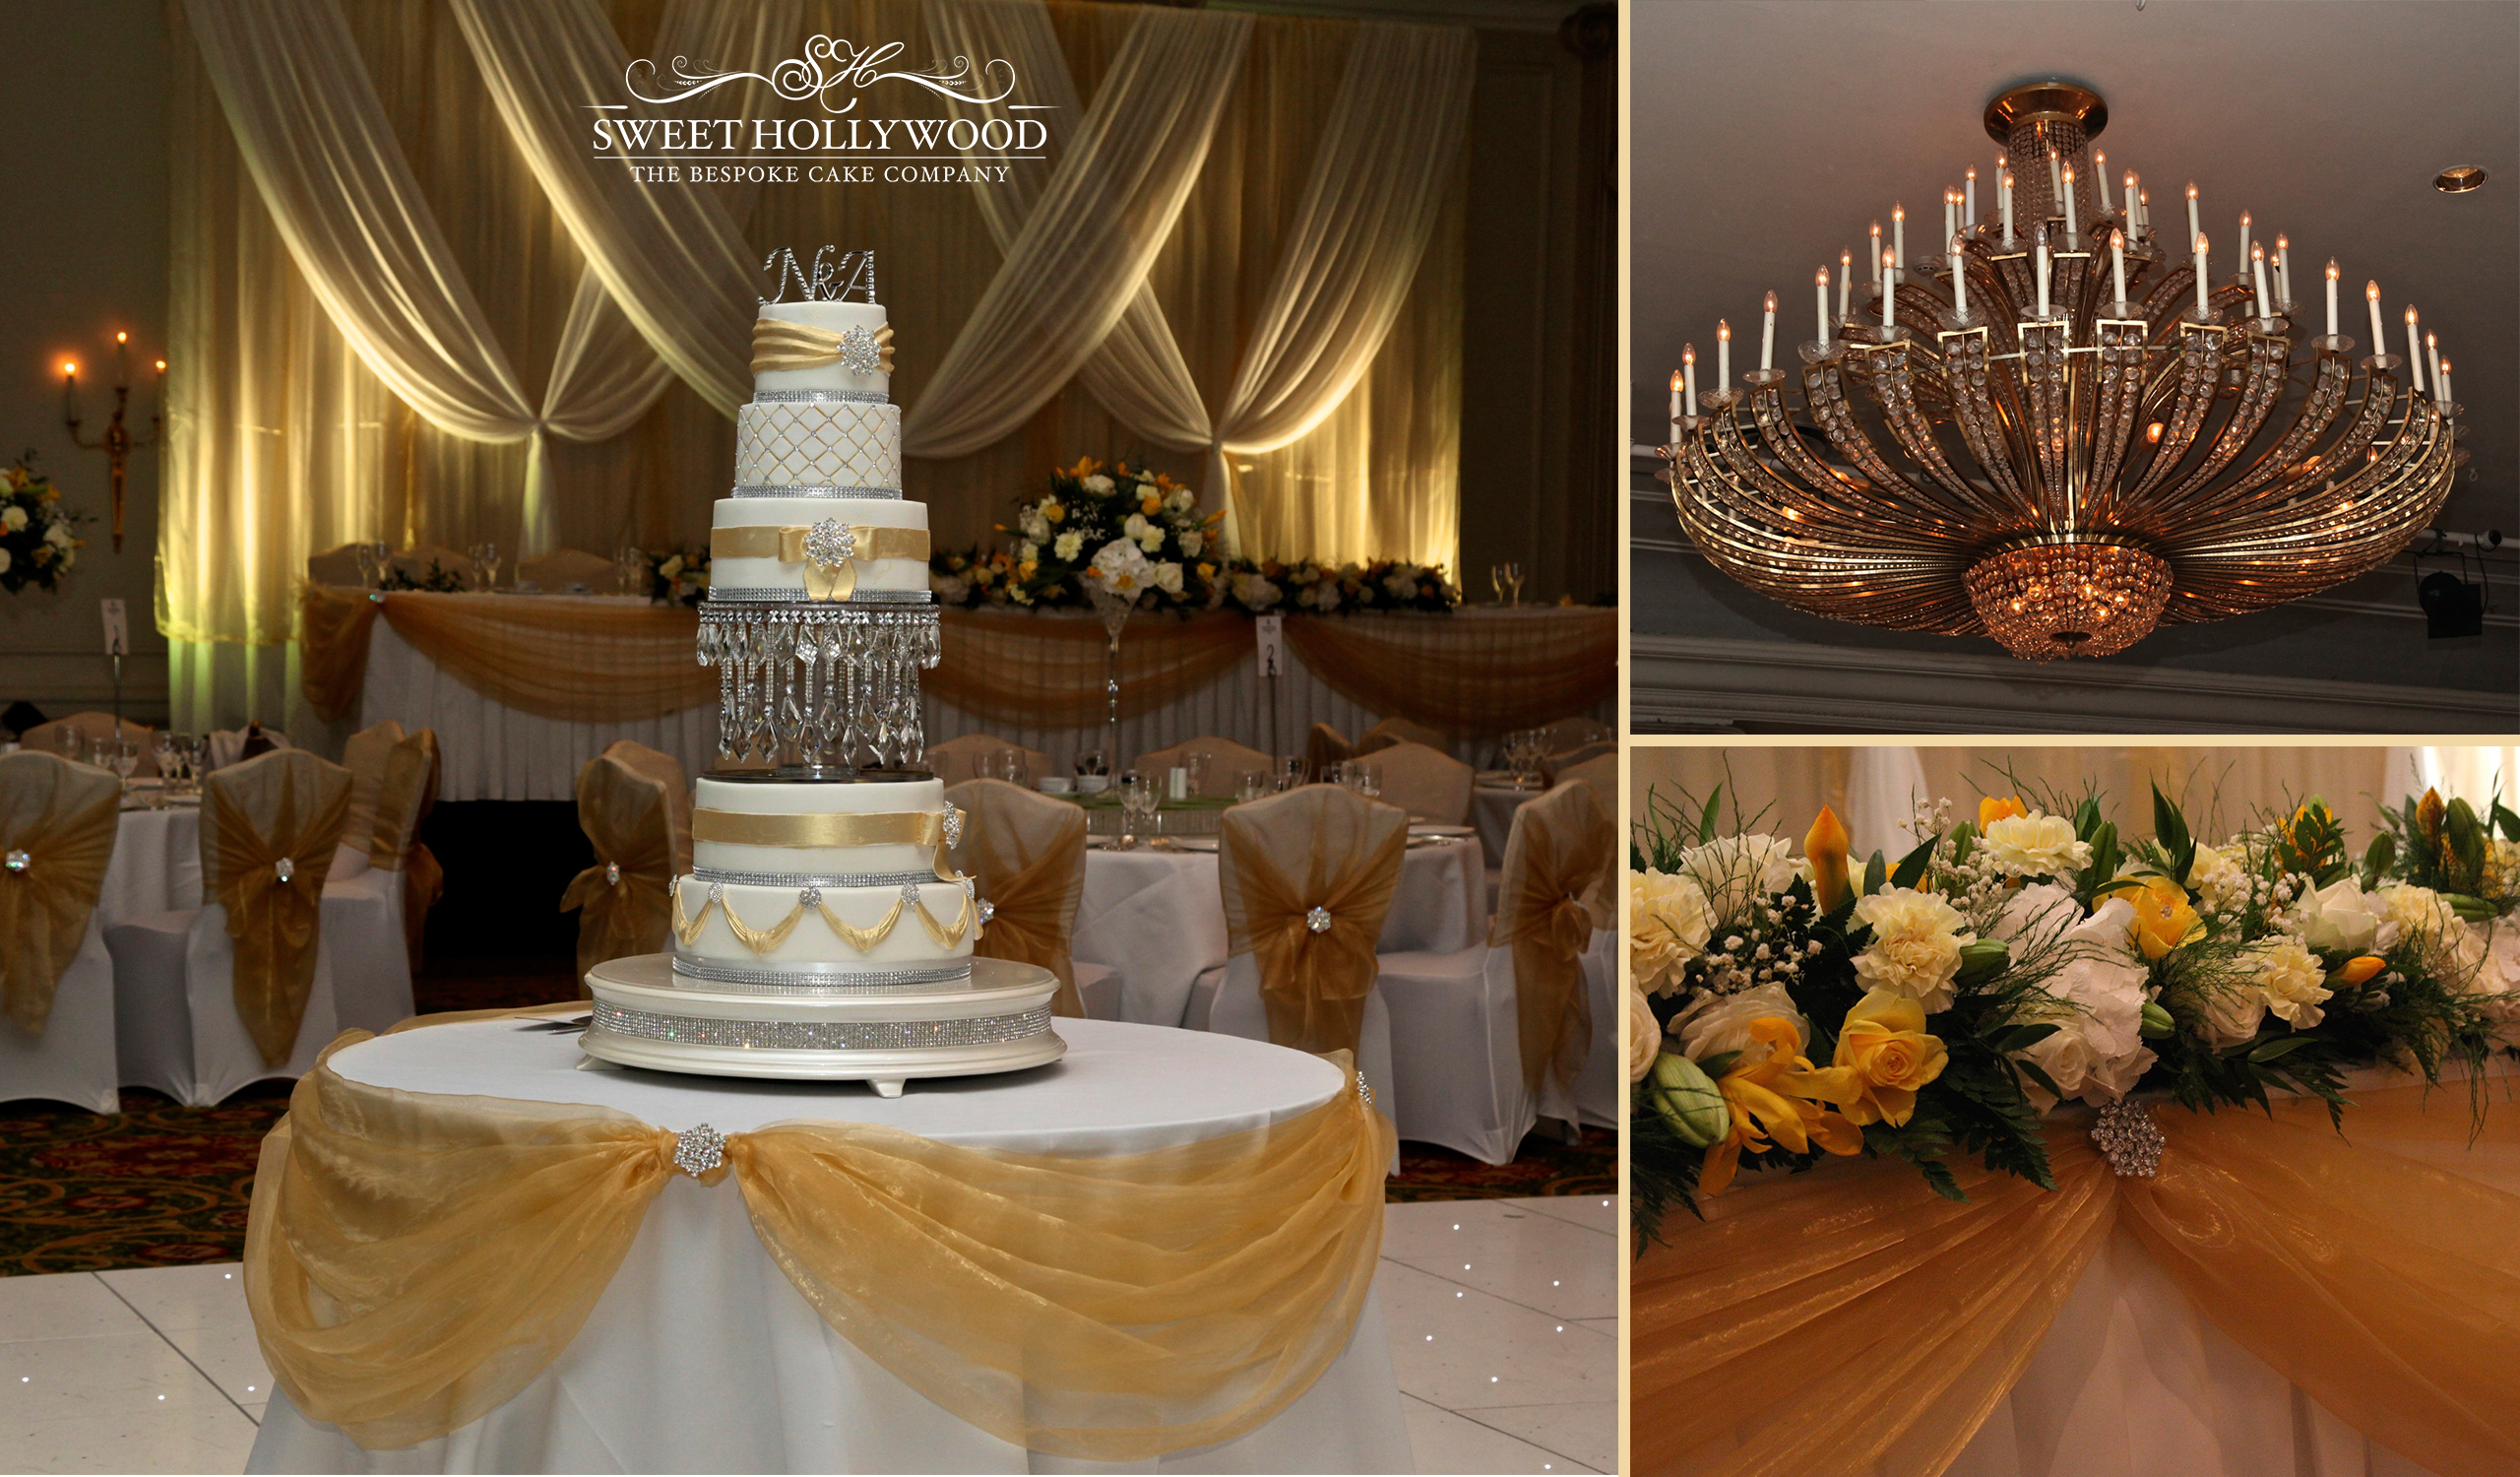 Gold Amp Silver Chandelier Wedding Cake Sweet Hollywood